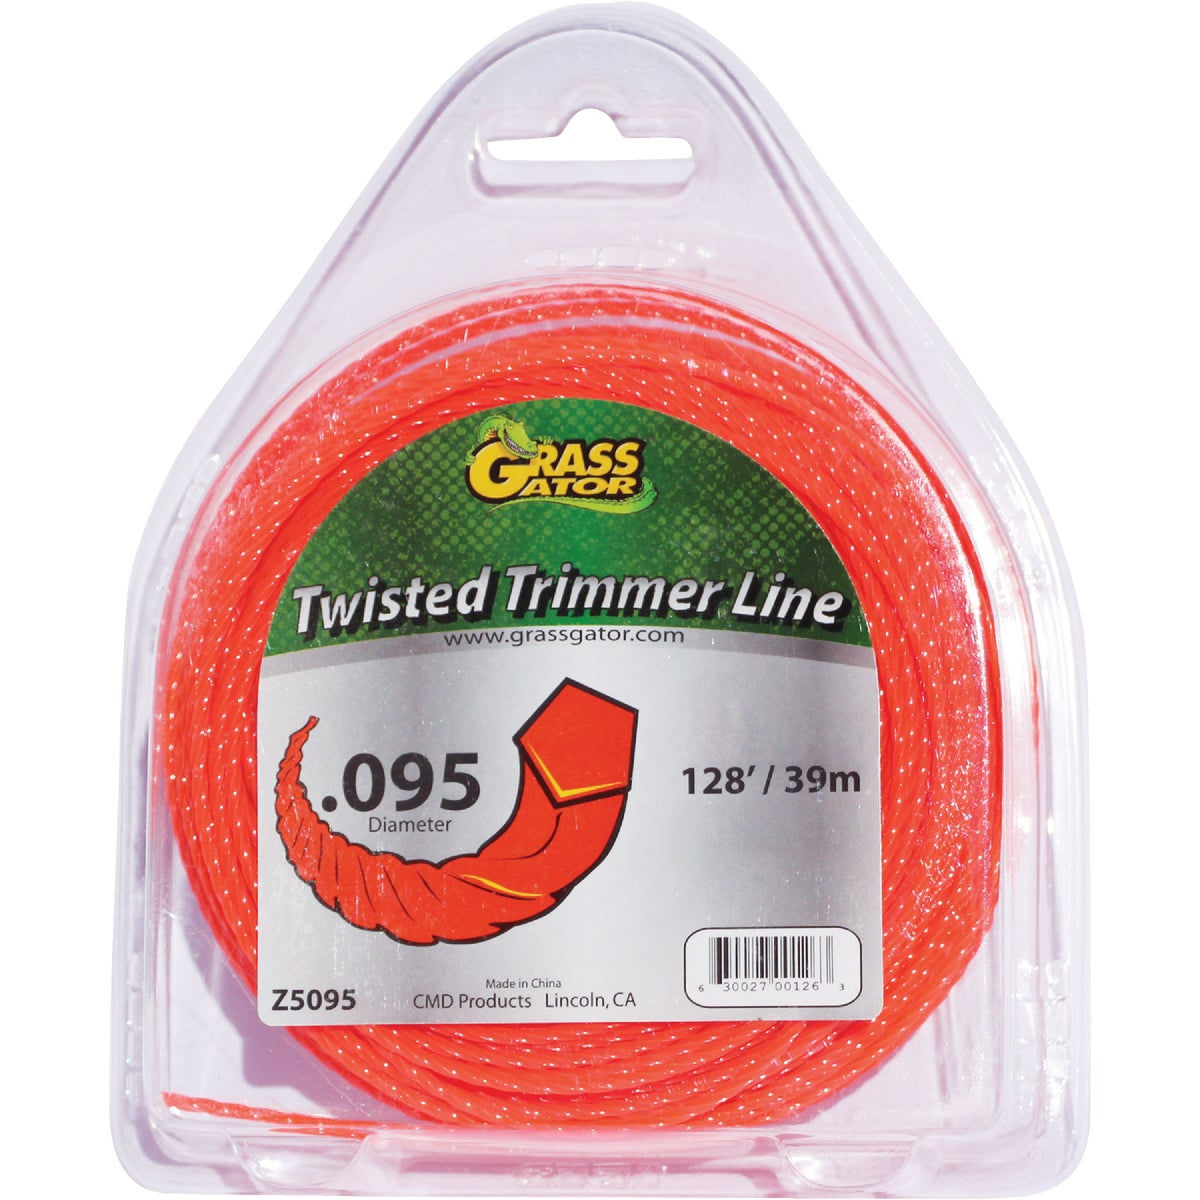 .095 TRIMMER DONUT - Z5095L by C M D Products